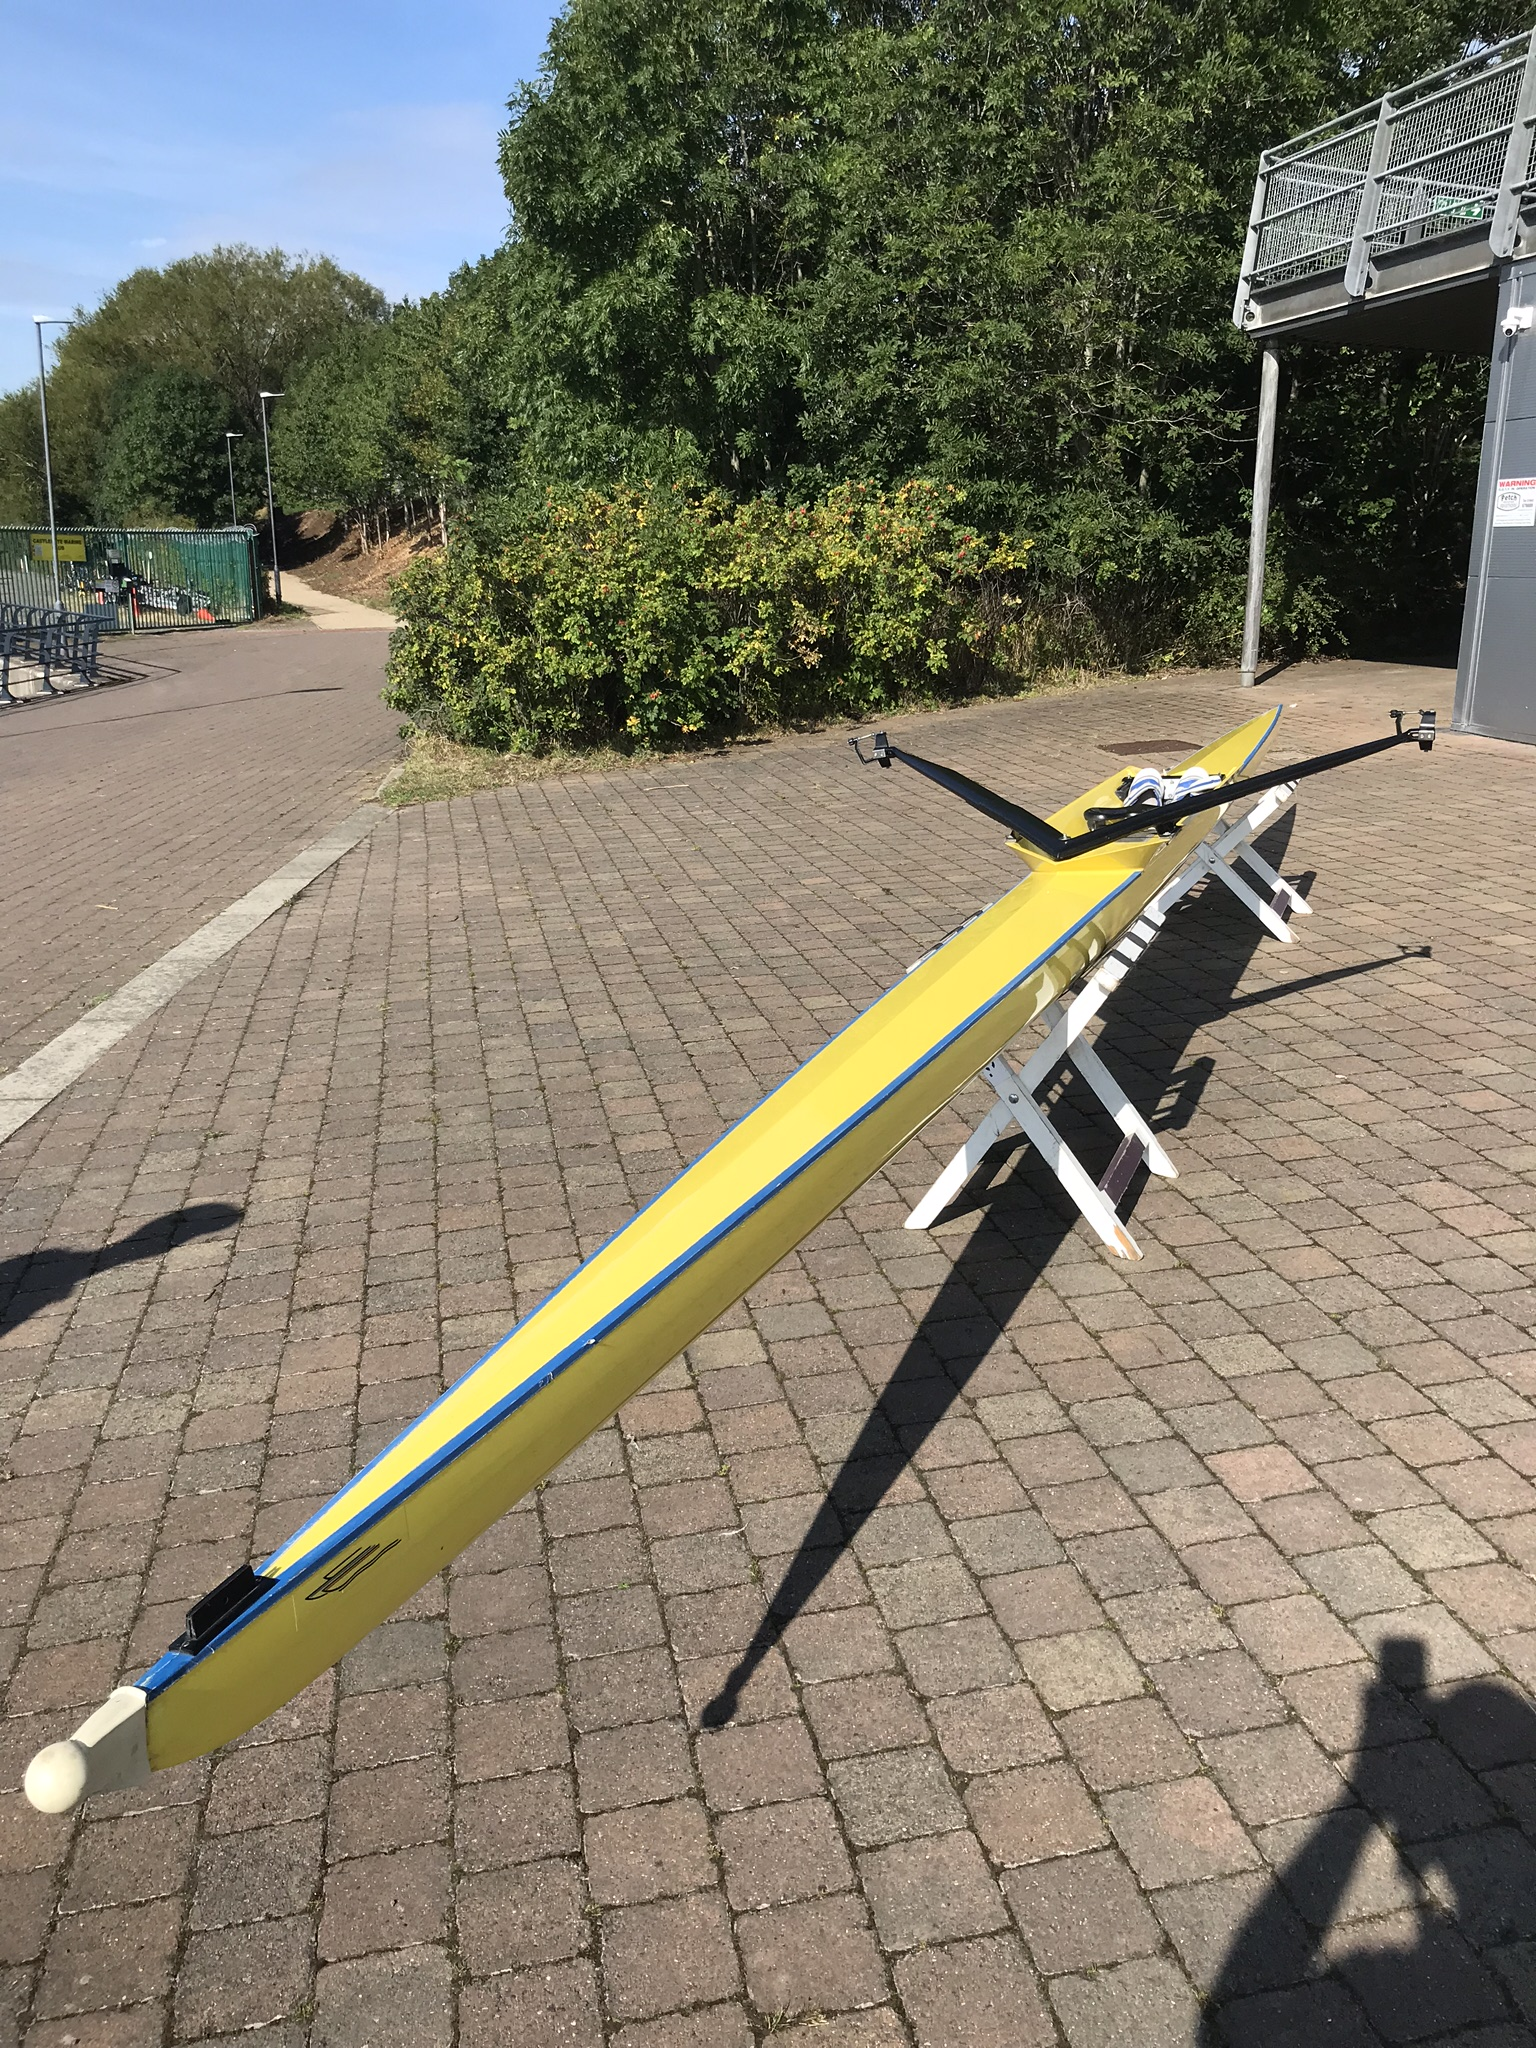 Final reduction 16/11/19 - Boat for SALE - Coxed Four changeable to a  Coxed Quad